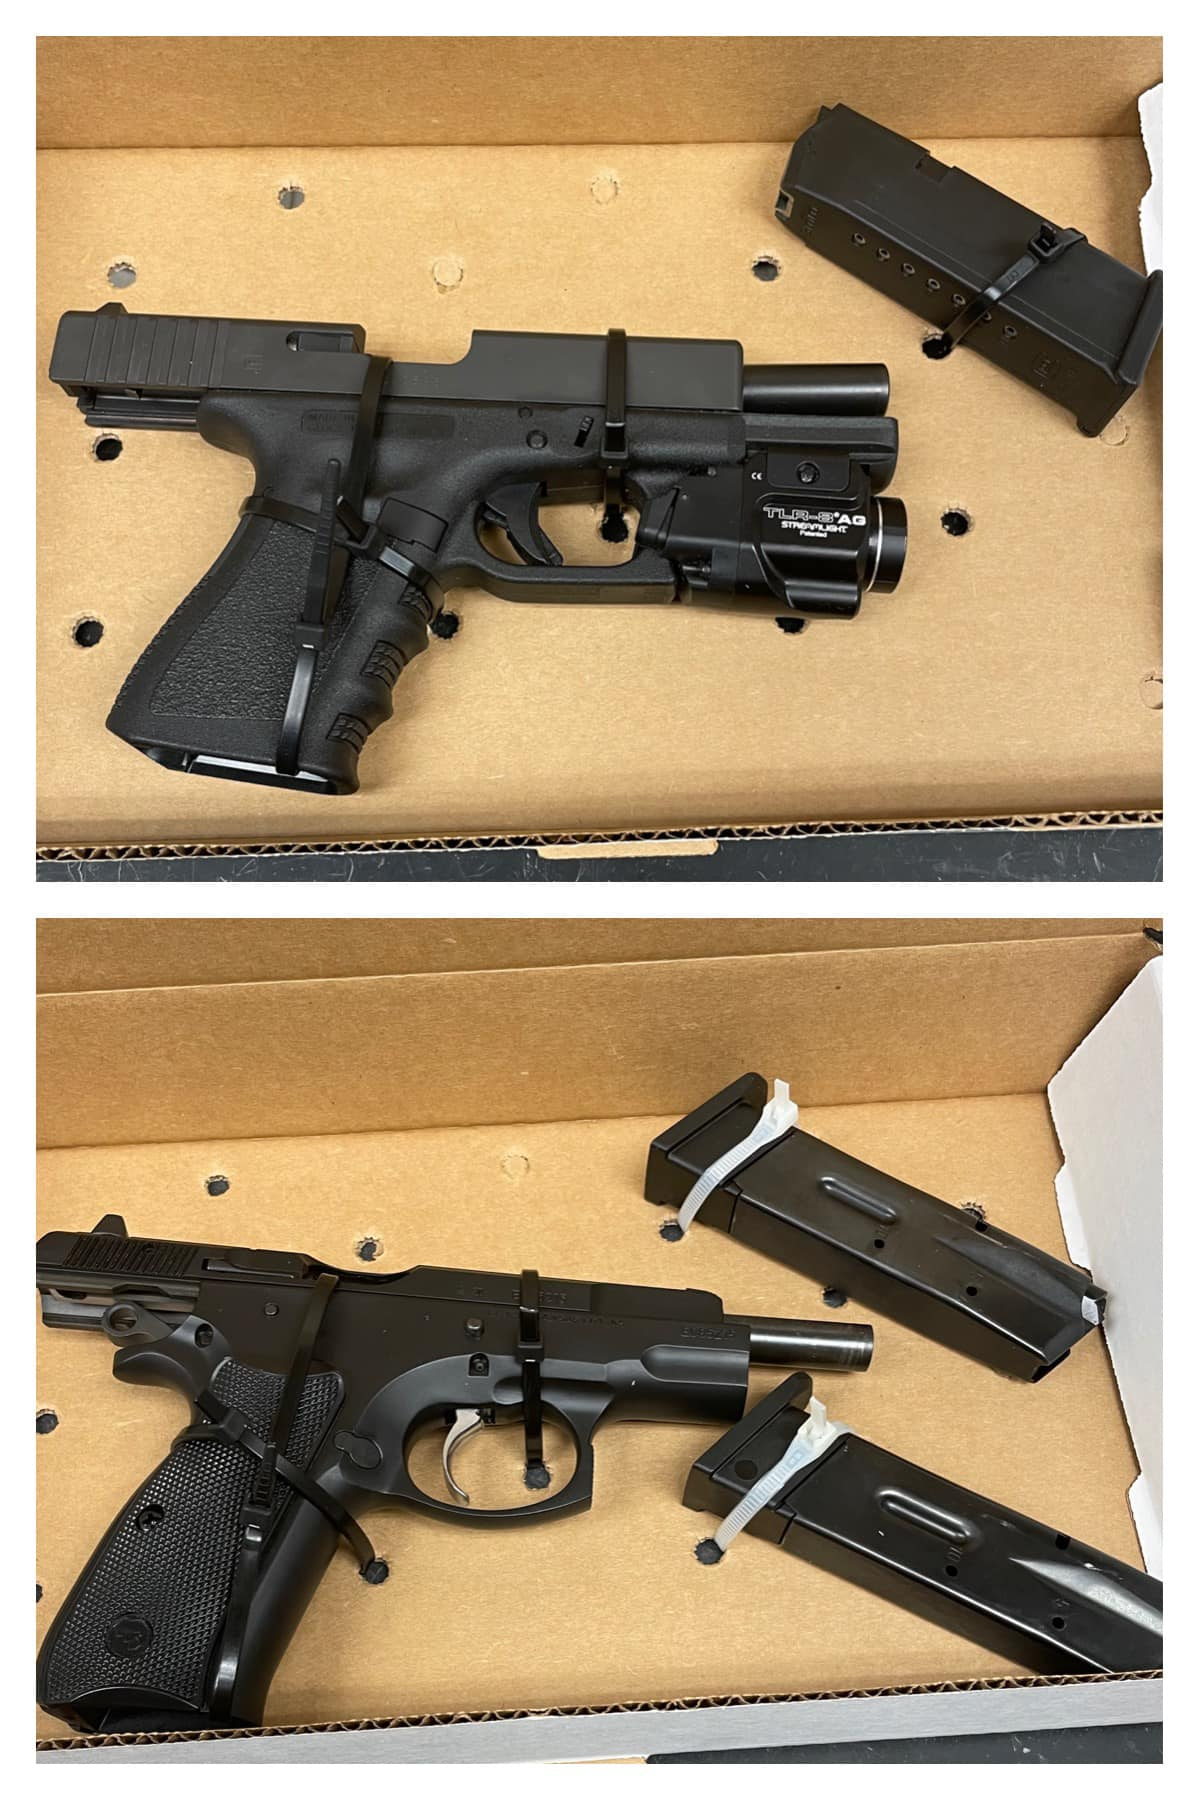 The handgun the suspected stalker was carrying were Glock 19 (top) and CZ 75 (bottom)